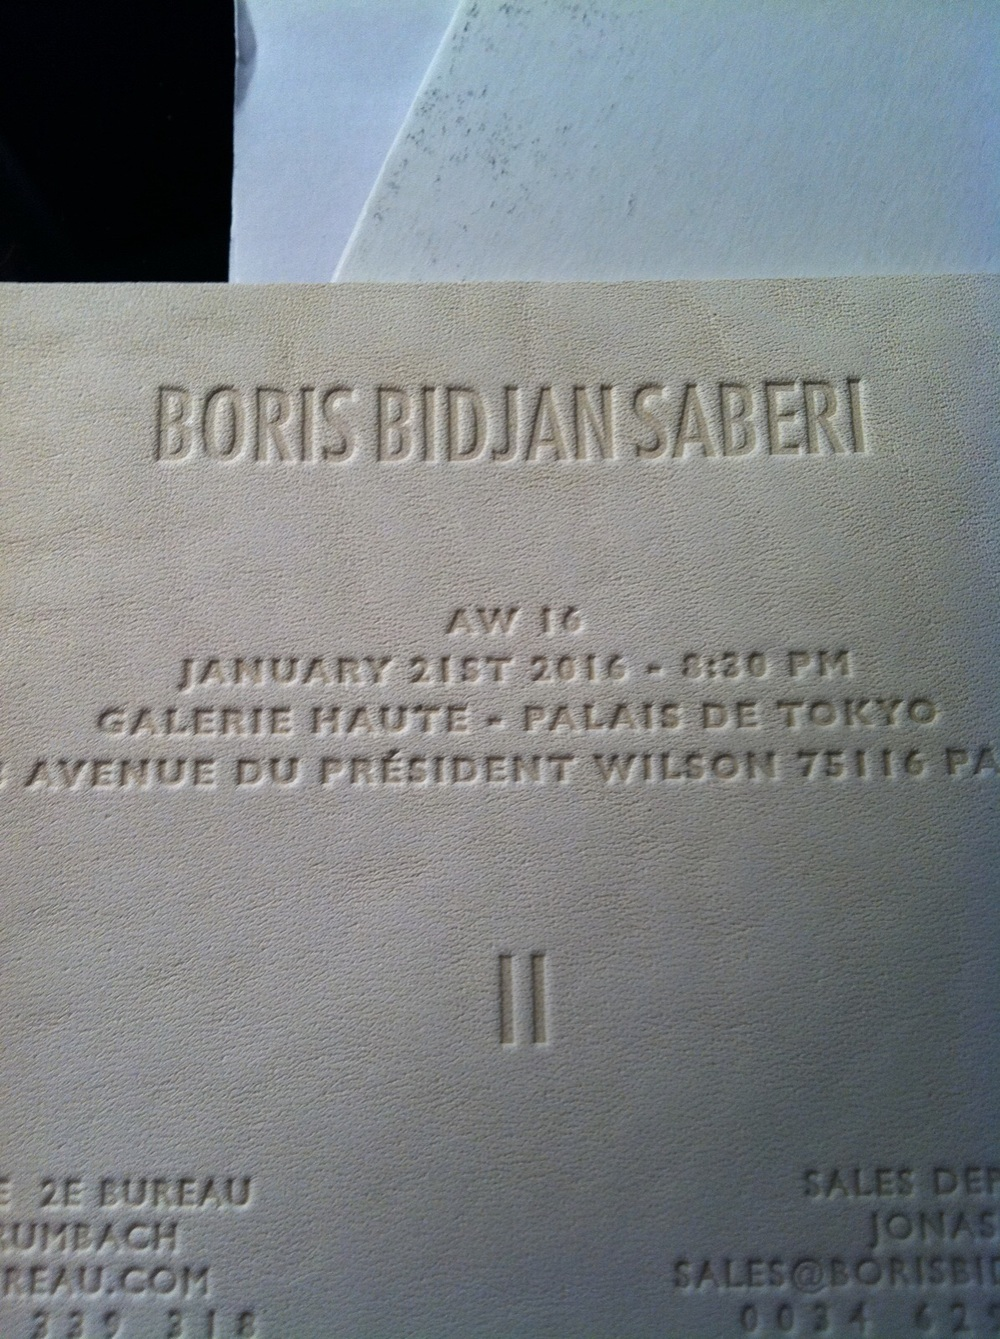 Invite on leather